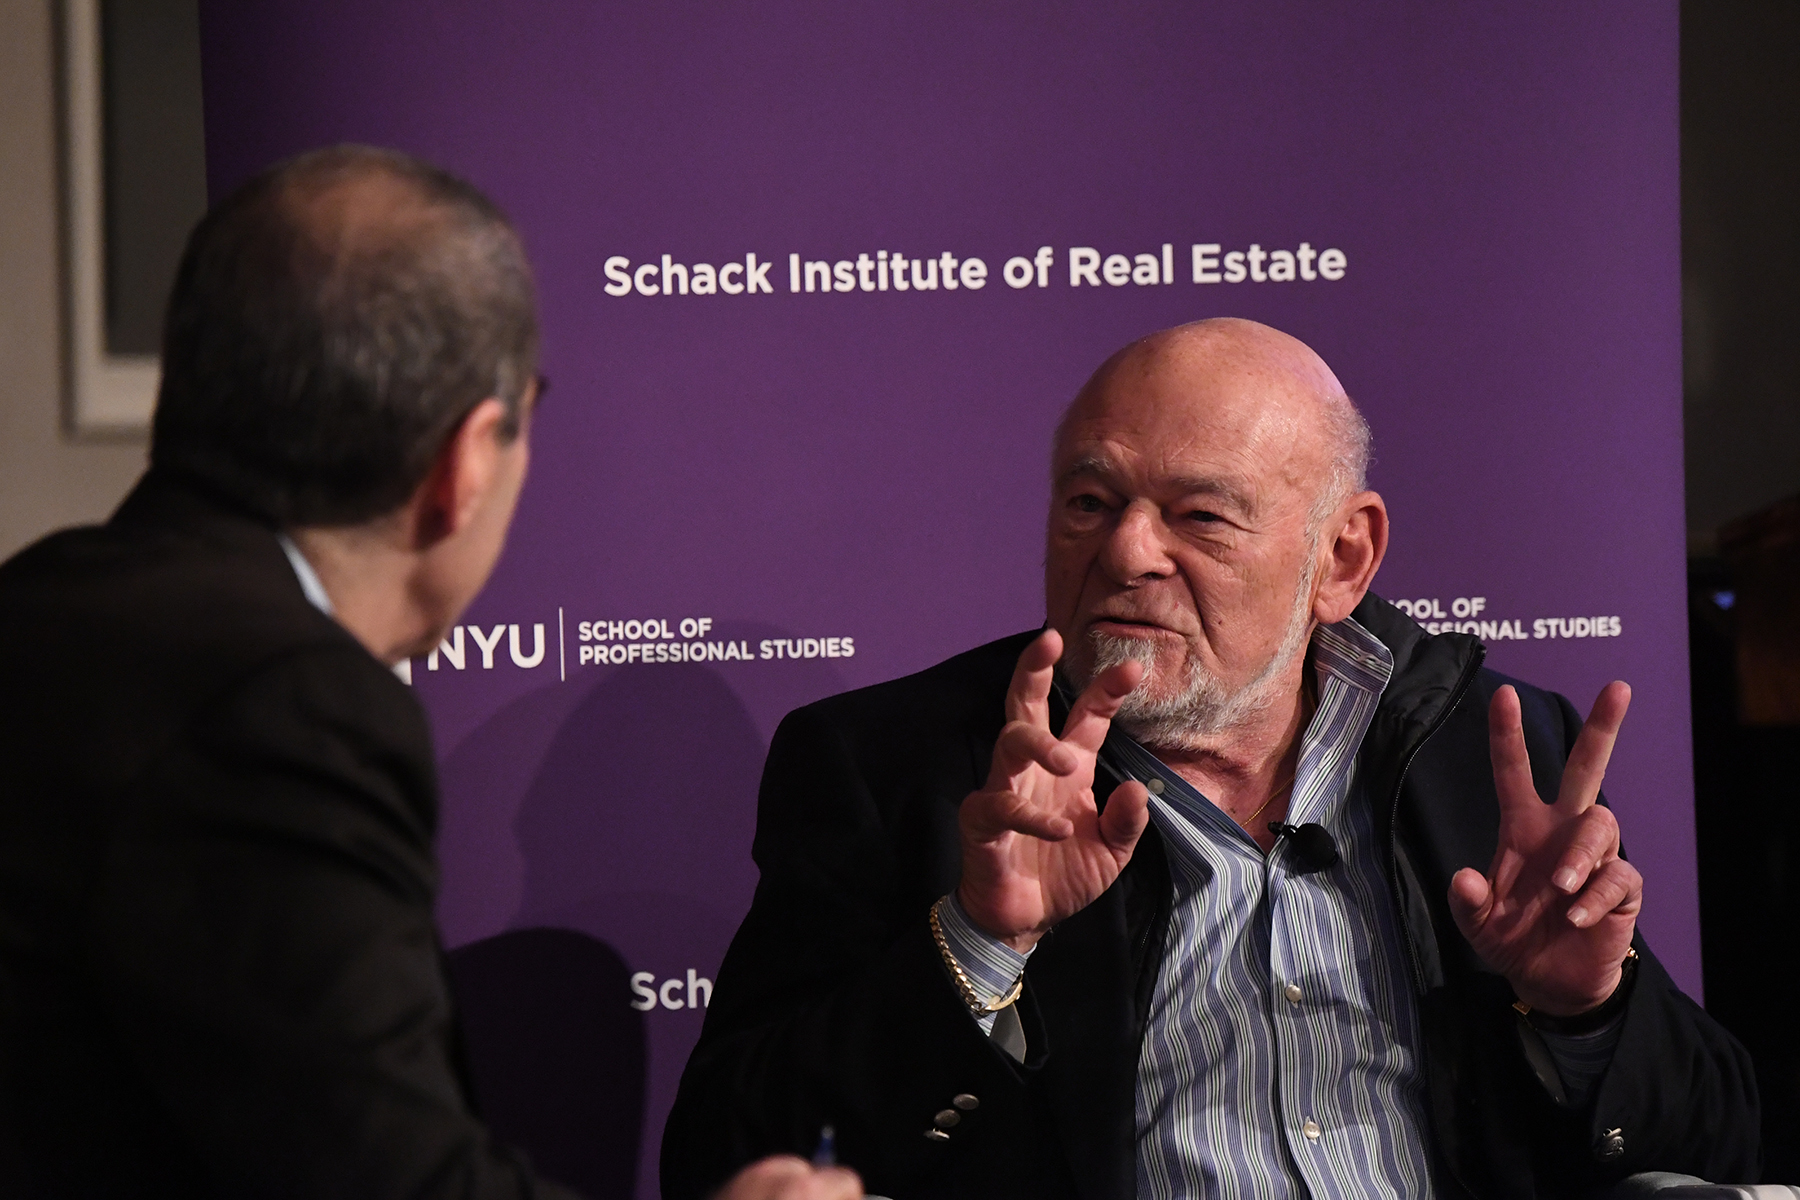 Sam Zell, chairman of Equity Group Investments, speaking at the 2017 NYU School of Professional Studies Schack Institute of Real Estate's REIT Symposim (Image courtesy of NYU Schack Institute of Real Estate)